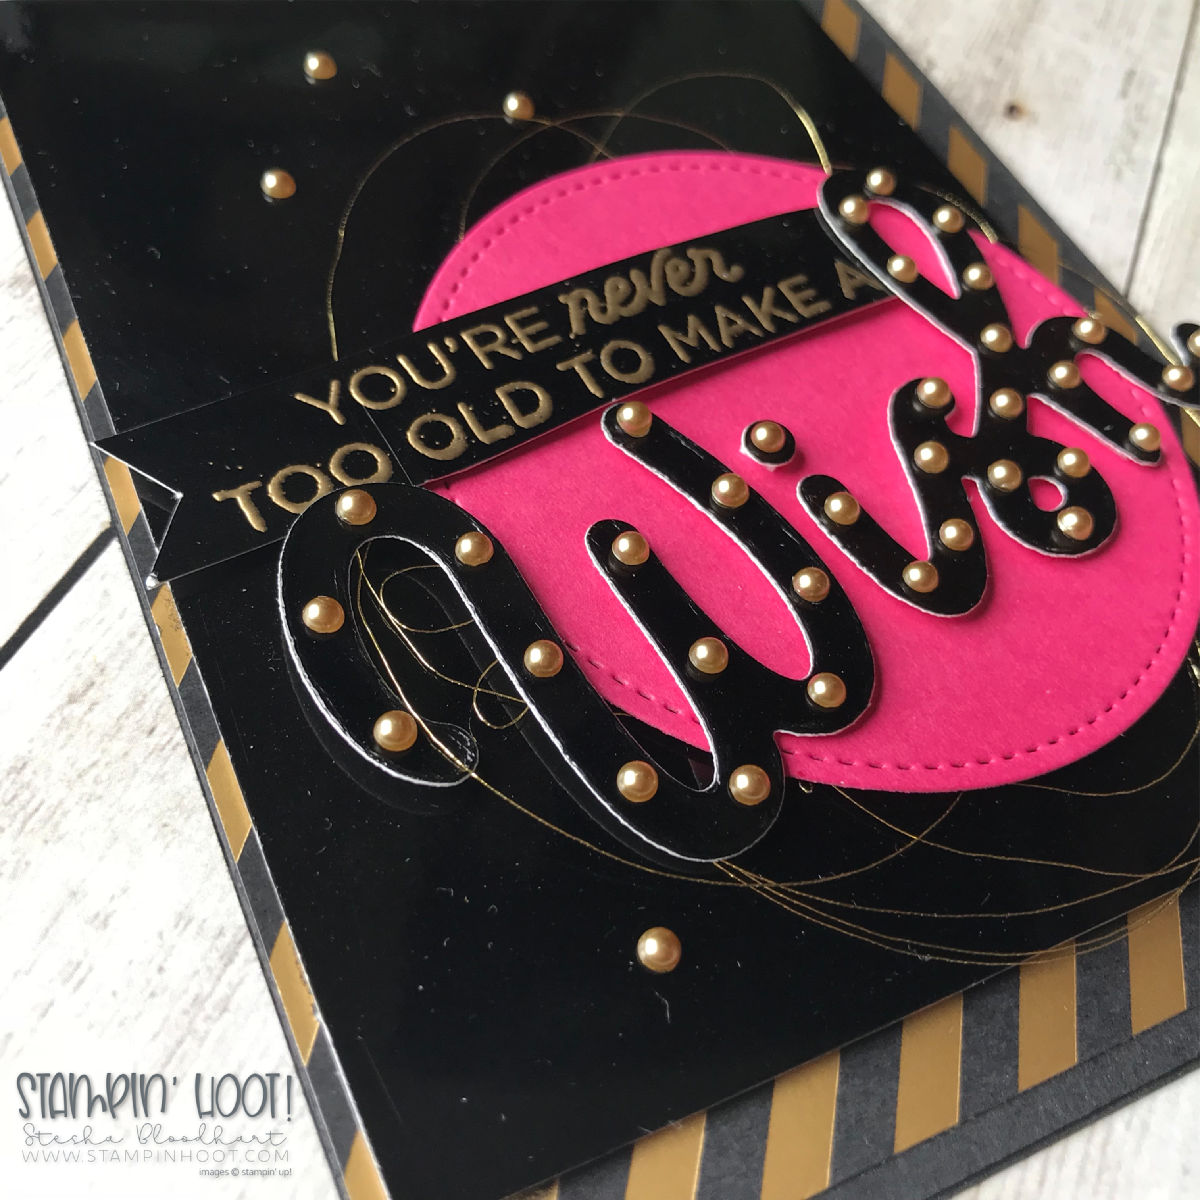 Broadway Birthday Bundle by Stampin' Up! Handmade Birthday Card by Stesha Bloodhart, Stampin' Hoot for #gdp163 Challenge